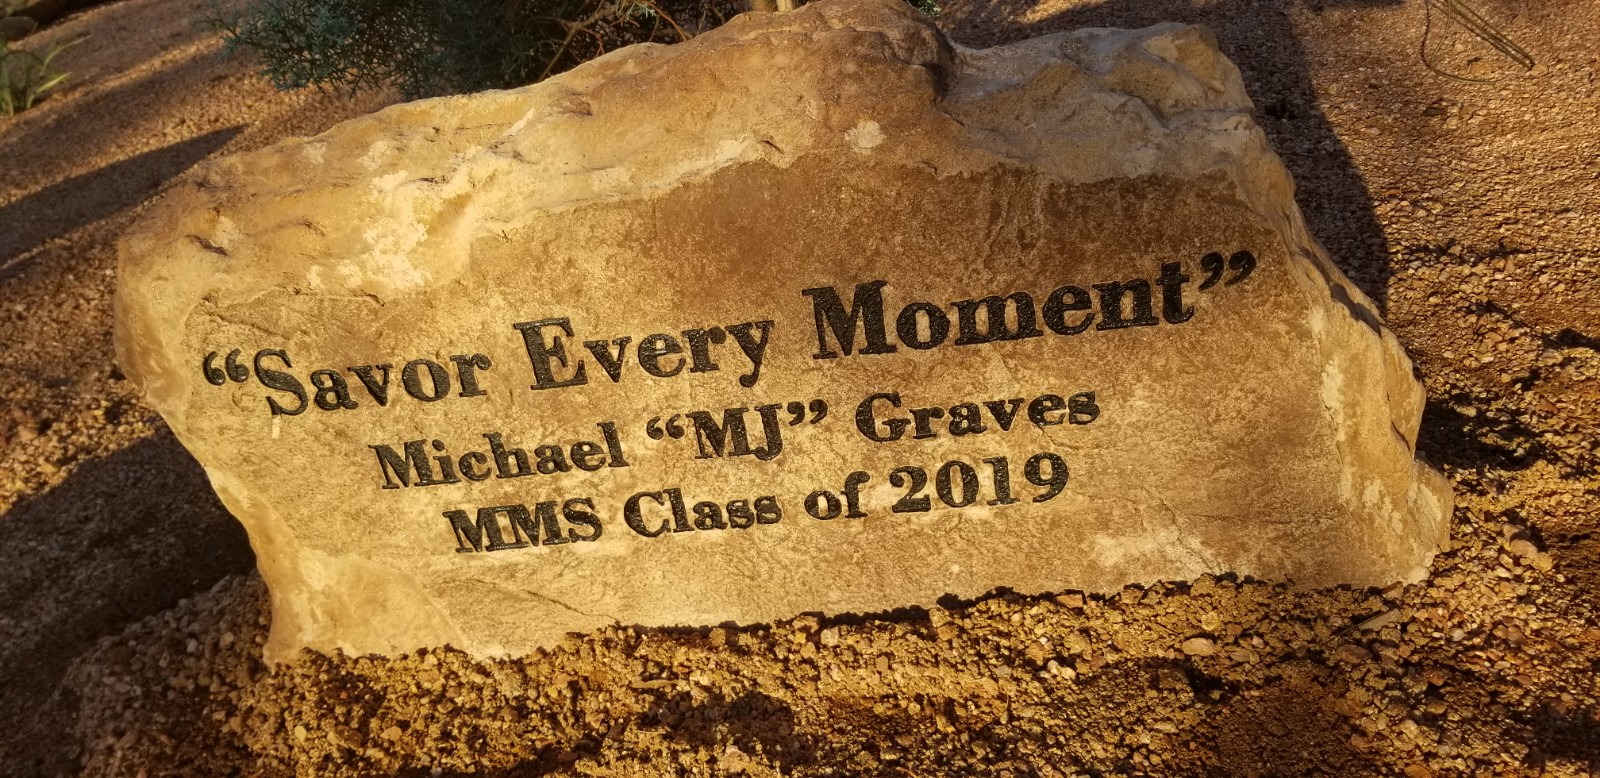 Kyle Kester created the MJ Graves Memorial Garden as his Eagle Scout project.